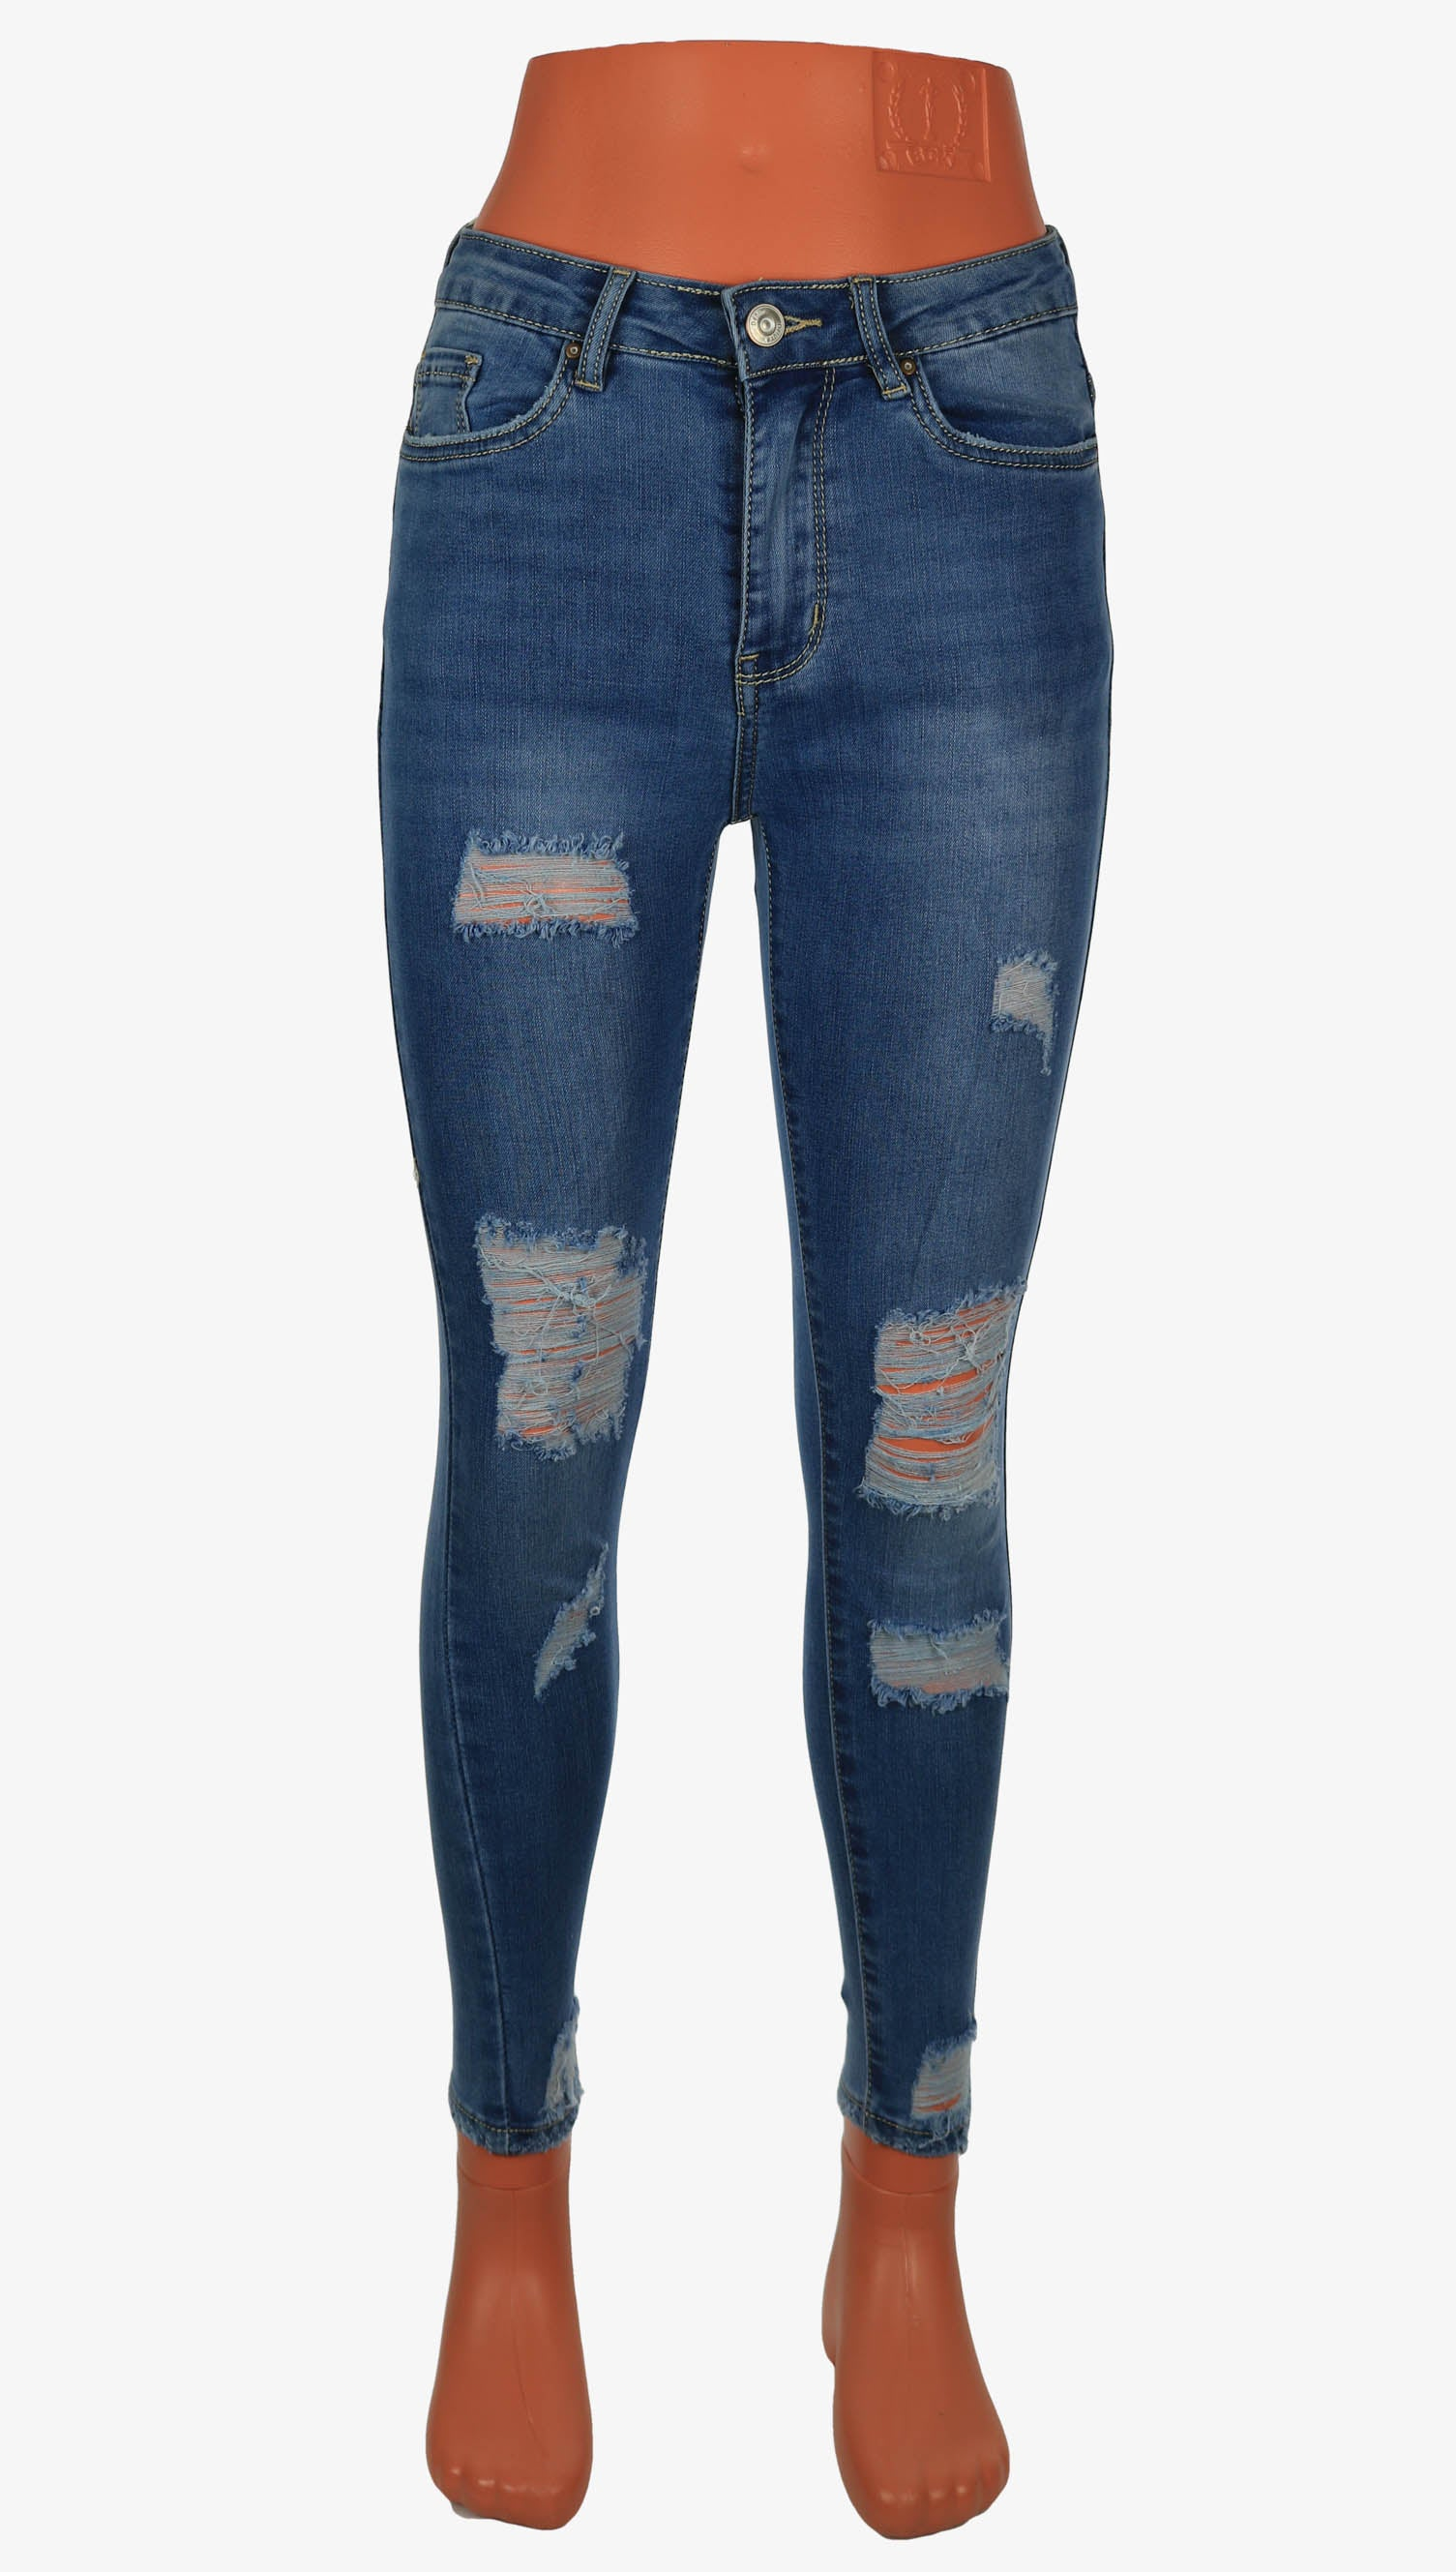 ecc4894eddaf Damen Jeans - Destroyed Ripped Knee - OutLook Tappered